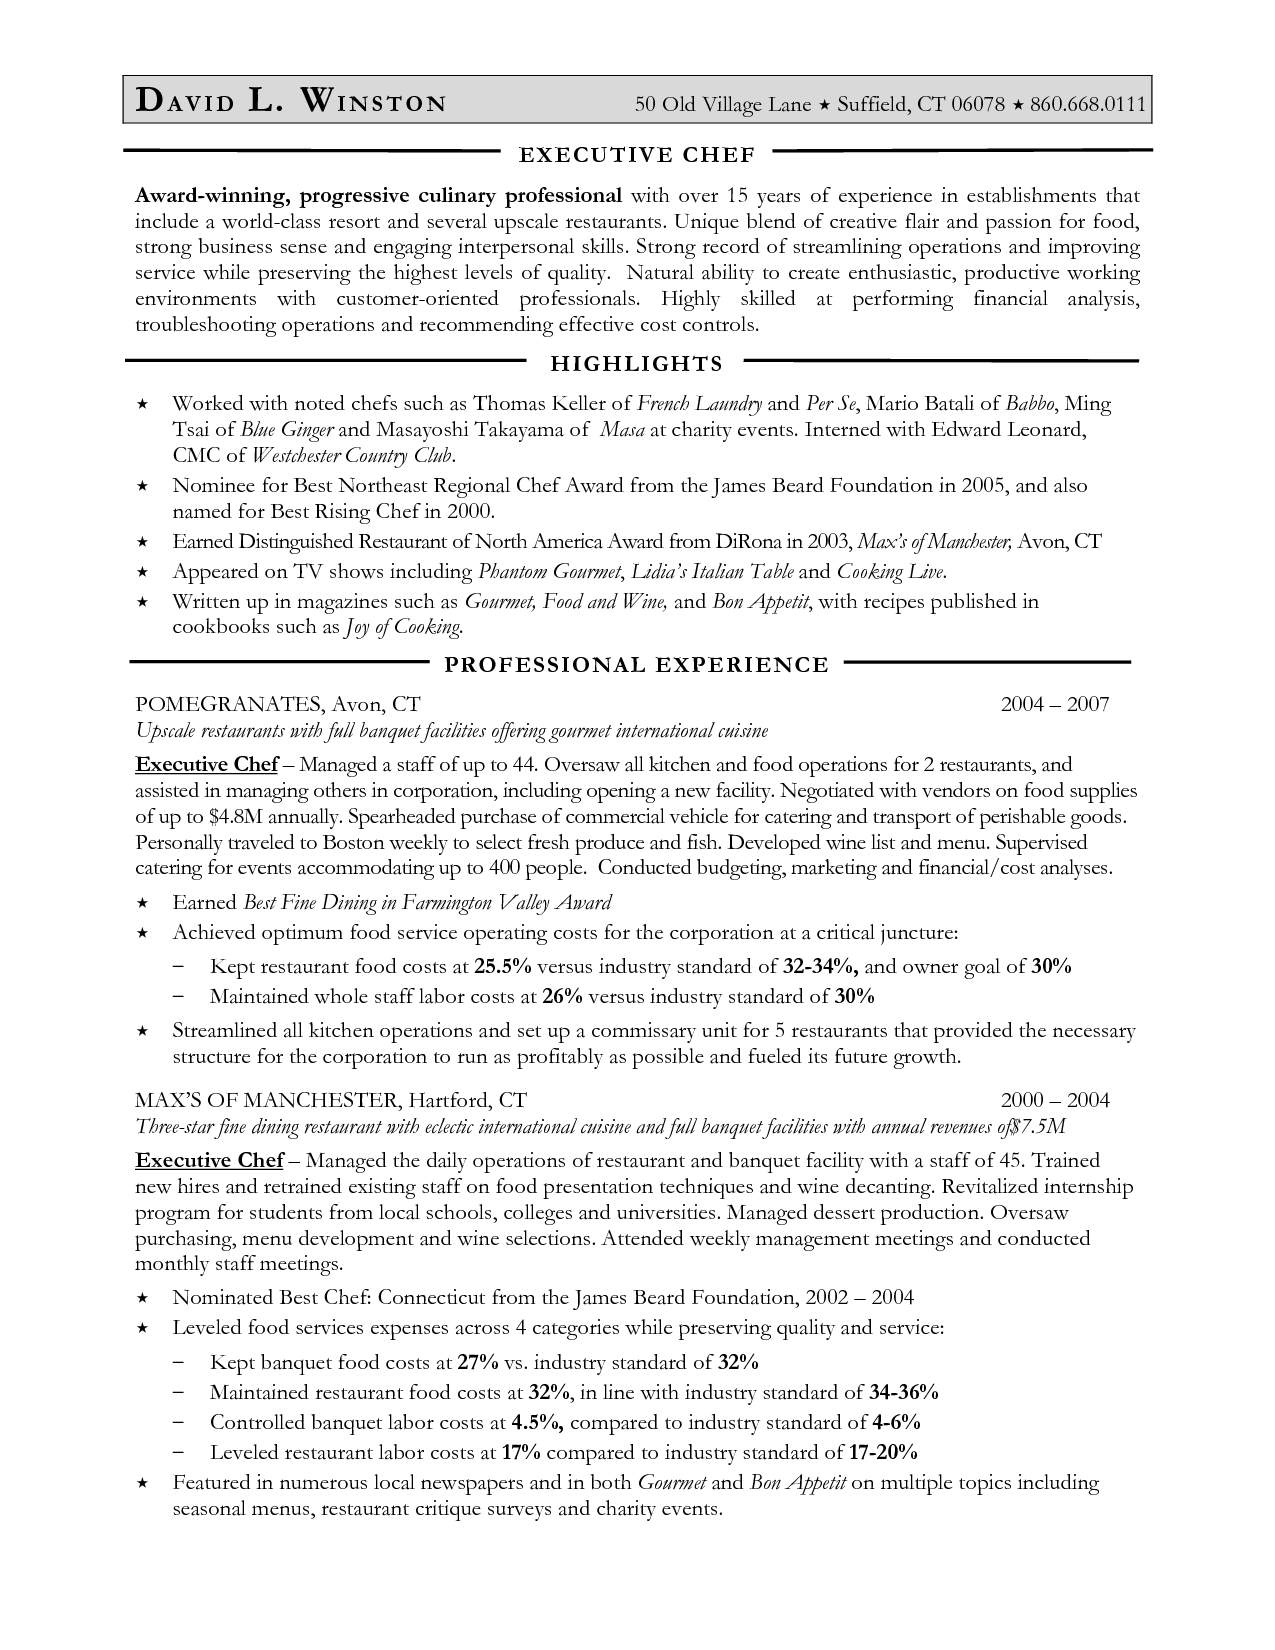 Executive Chef Resume Pastry Chef Resume Samples  Httpwwwjobresumewebsitepastry